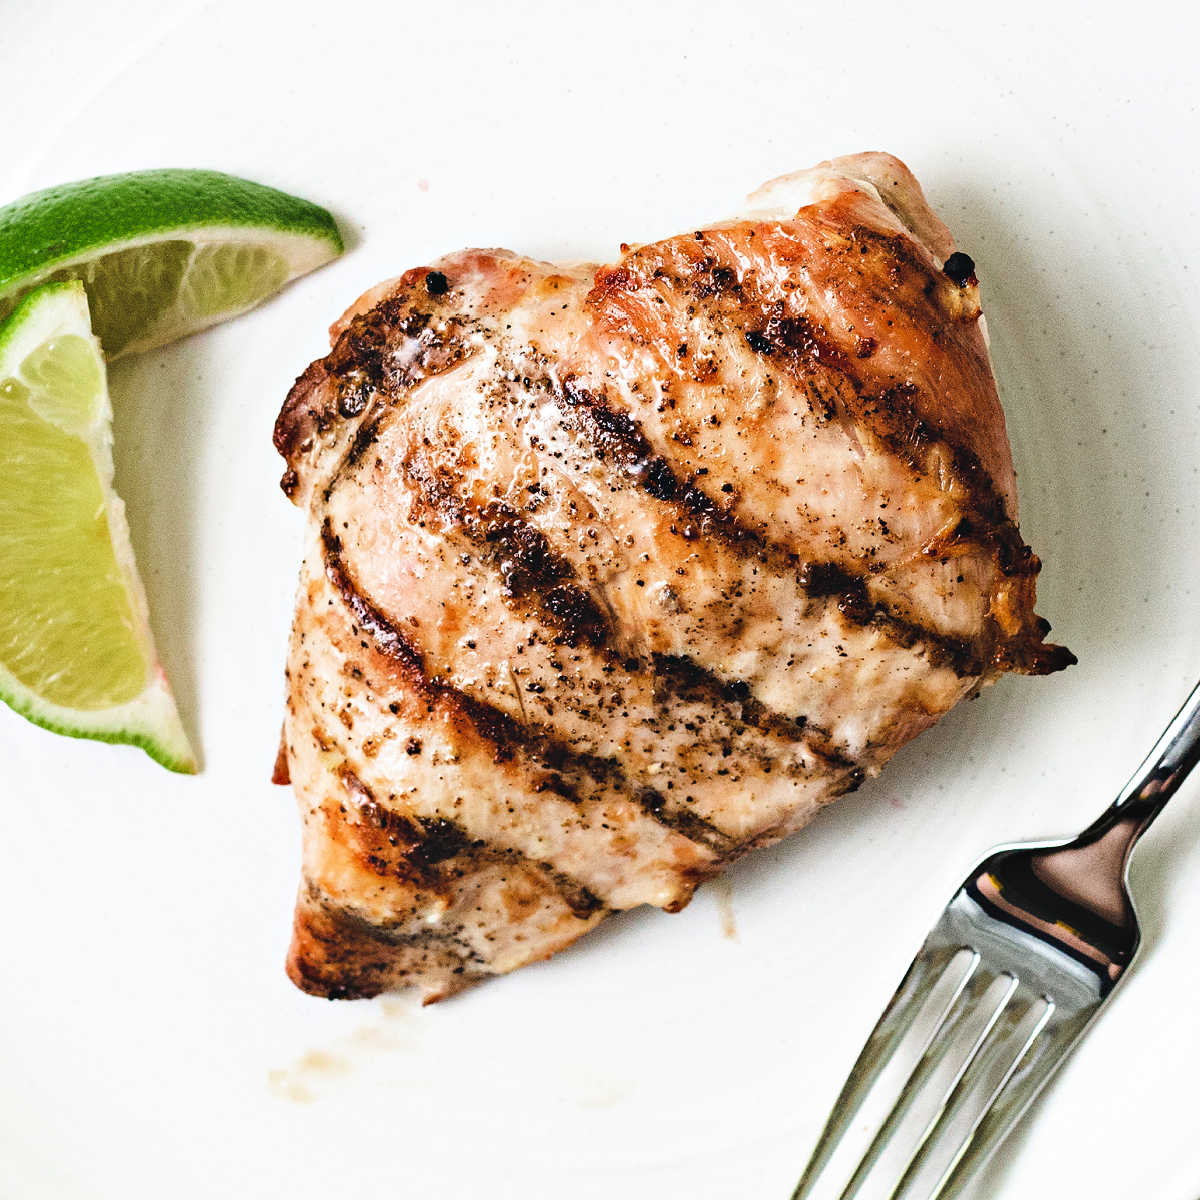 grilled chicken breast on a white plate with lime wedges and a fork.